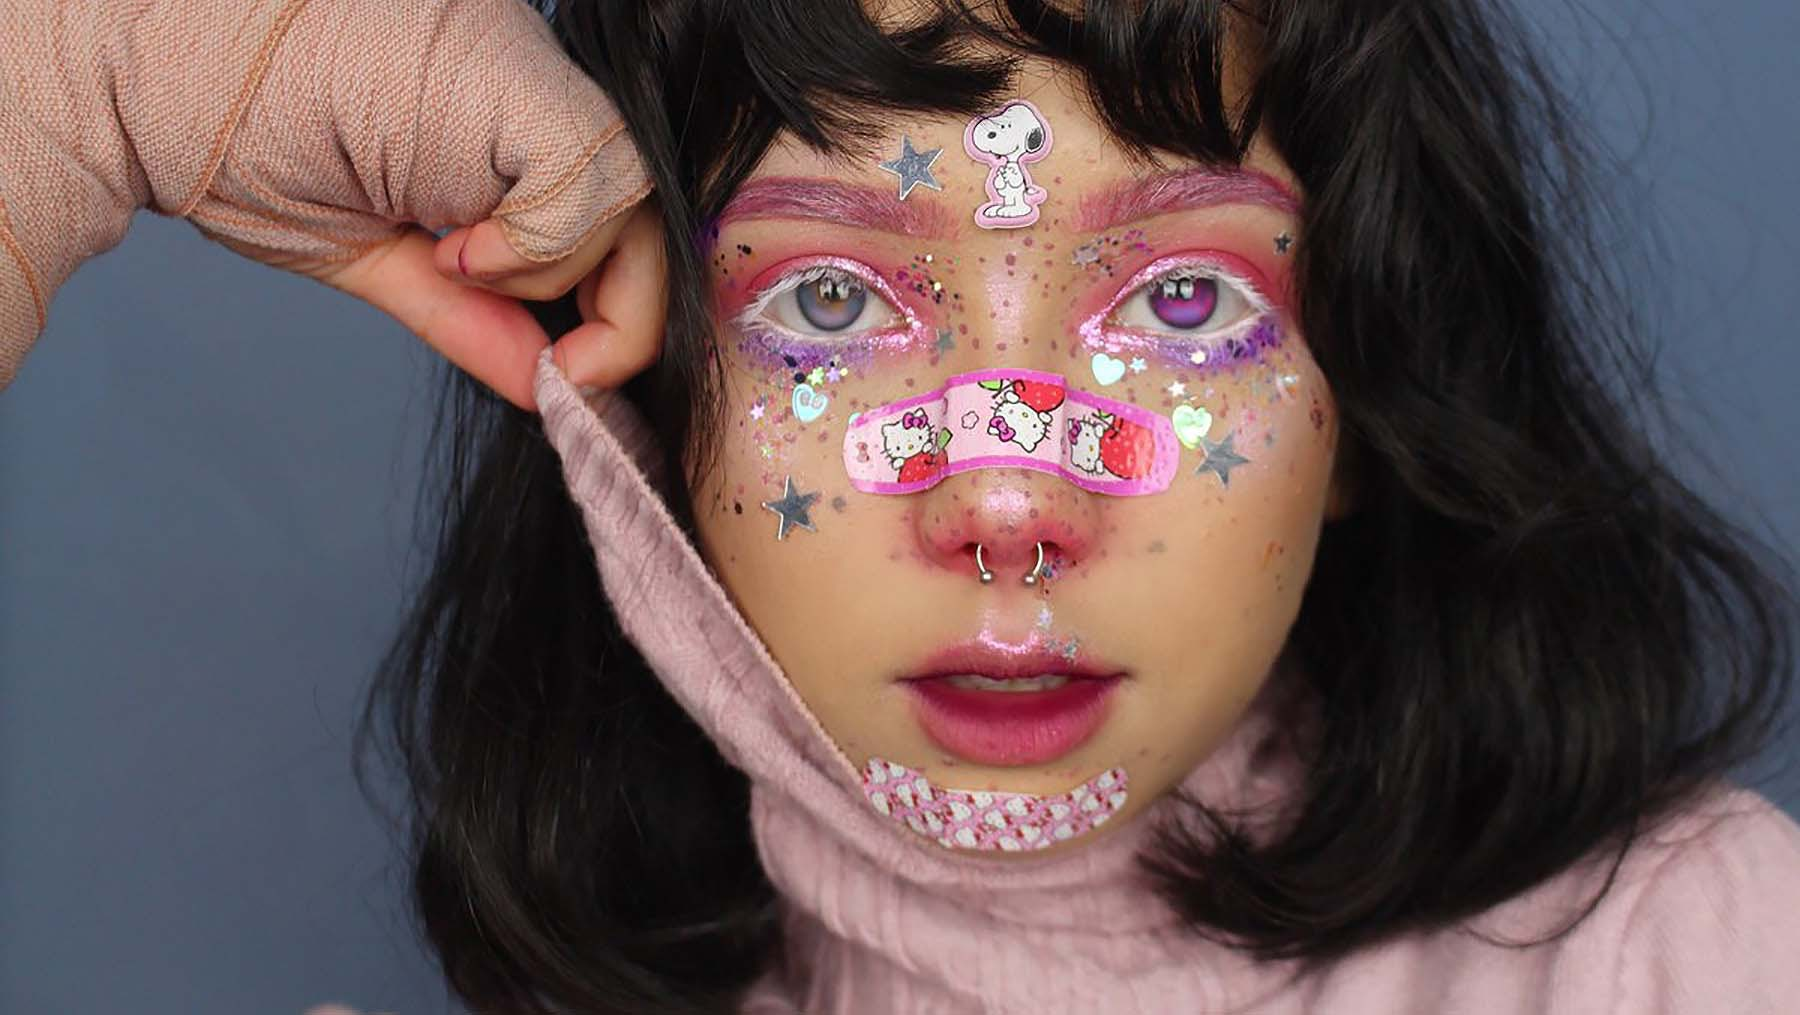 A 'yami-kawaii' look by June Crees | Source: Courtesy of June Crees